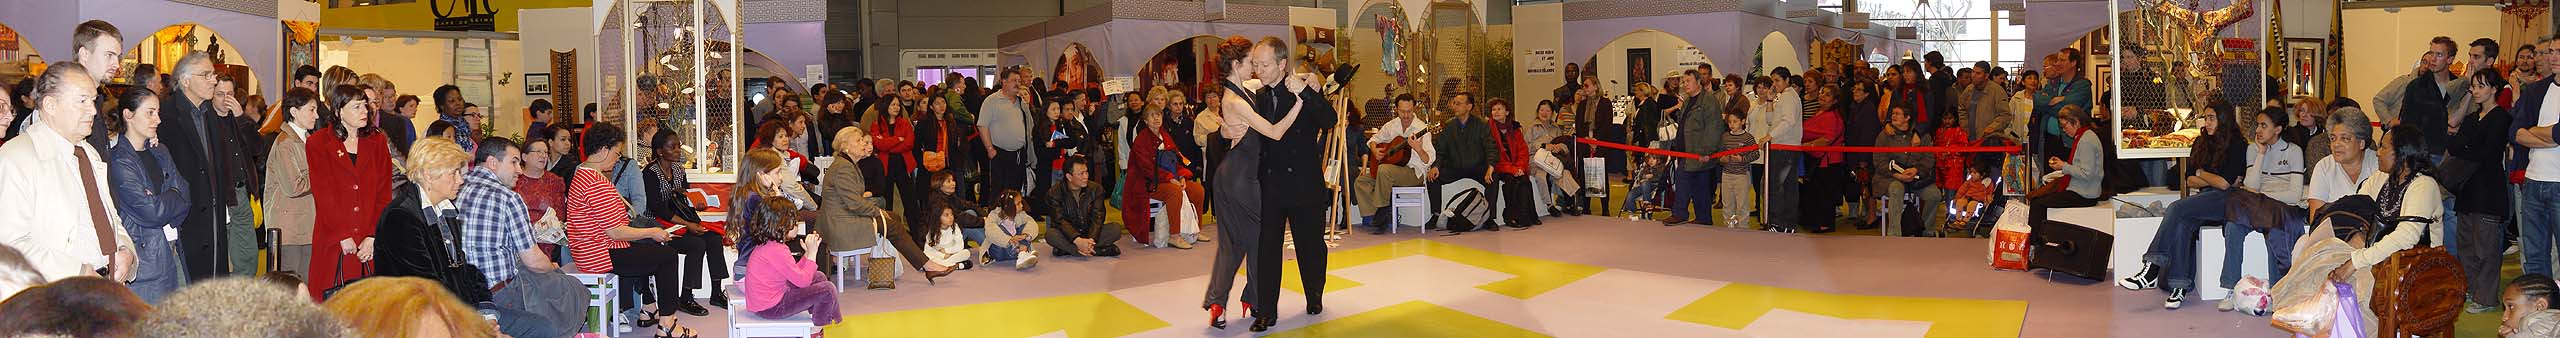 Foire de Paris argentine tango initiation workshop